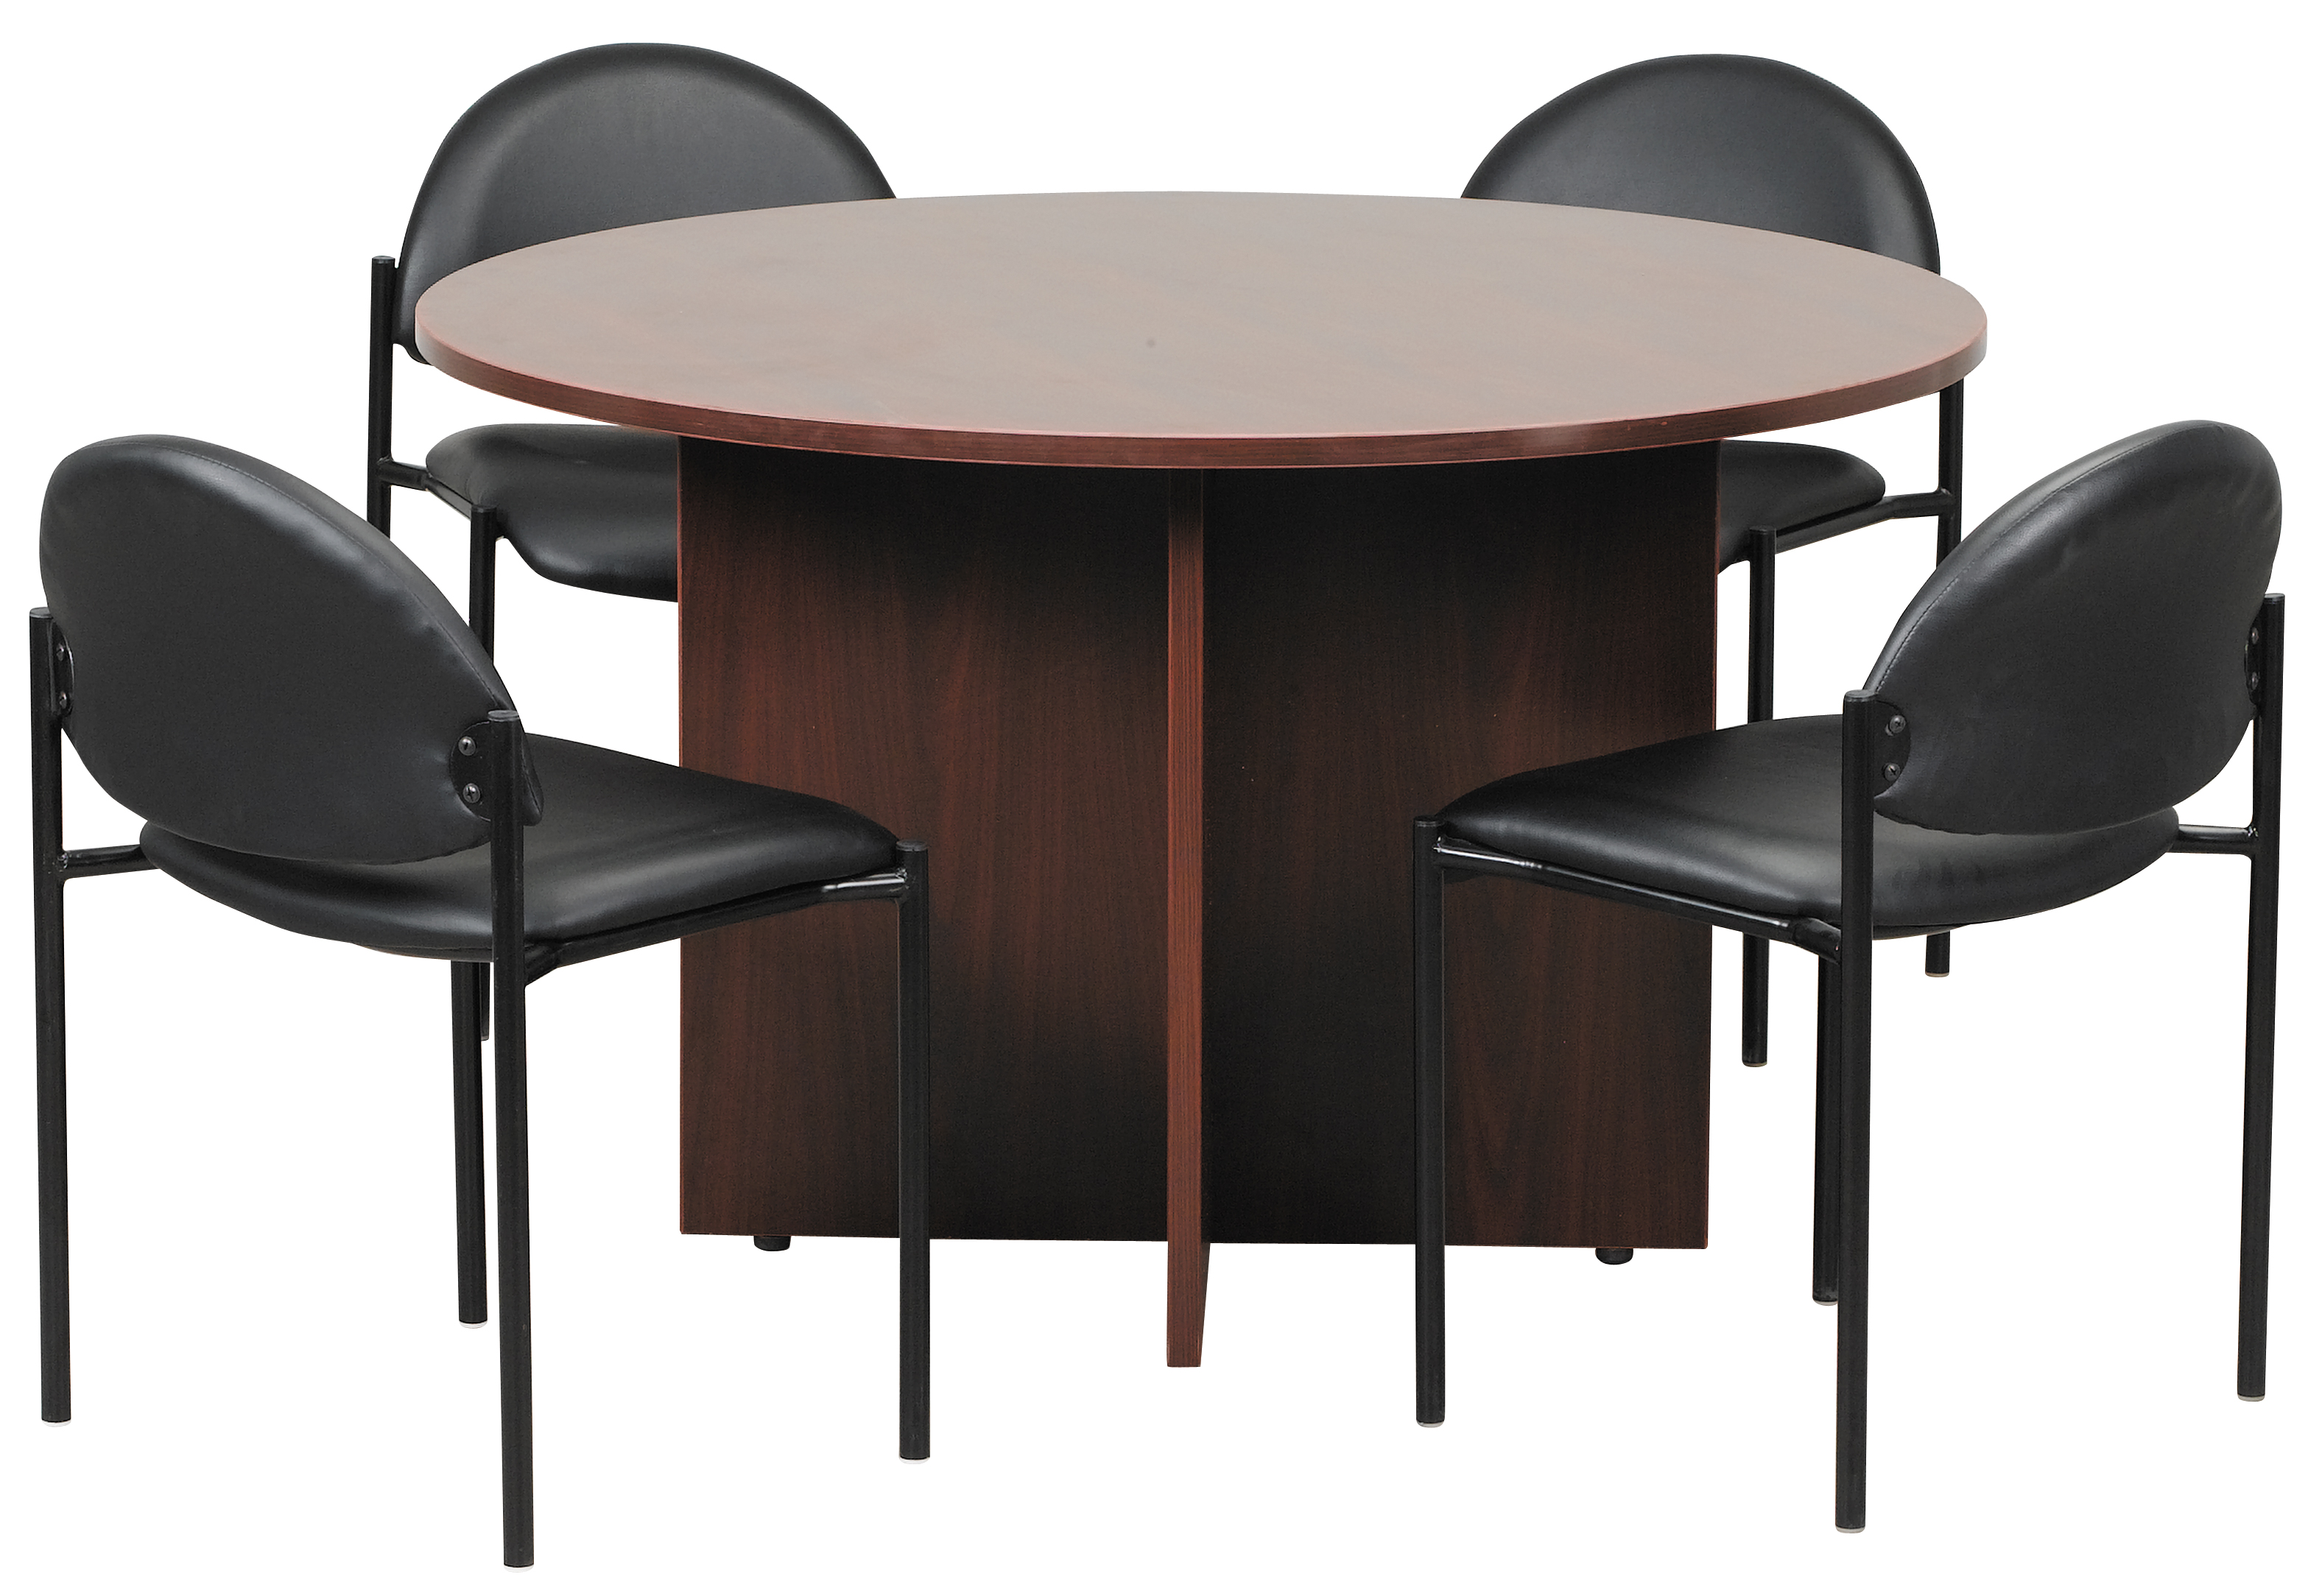 Office Table And Chairs hoppers office furniture - conference room